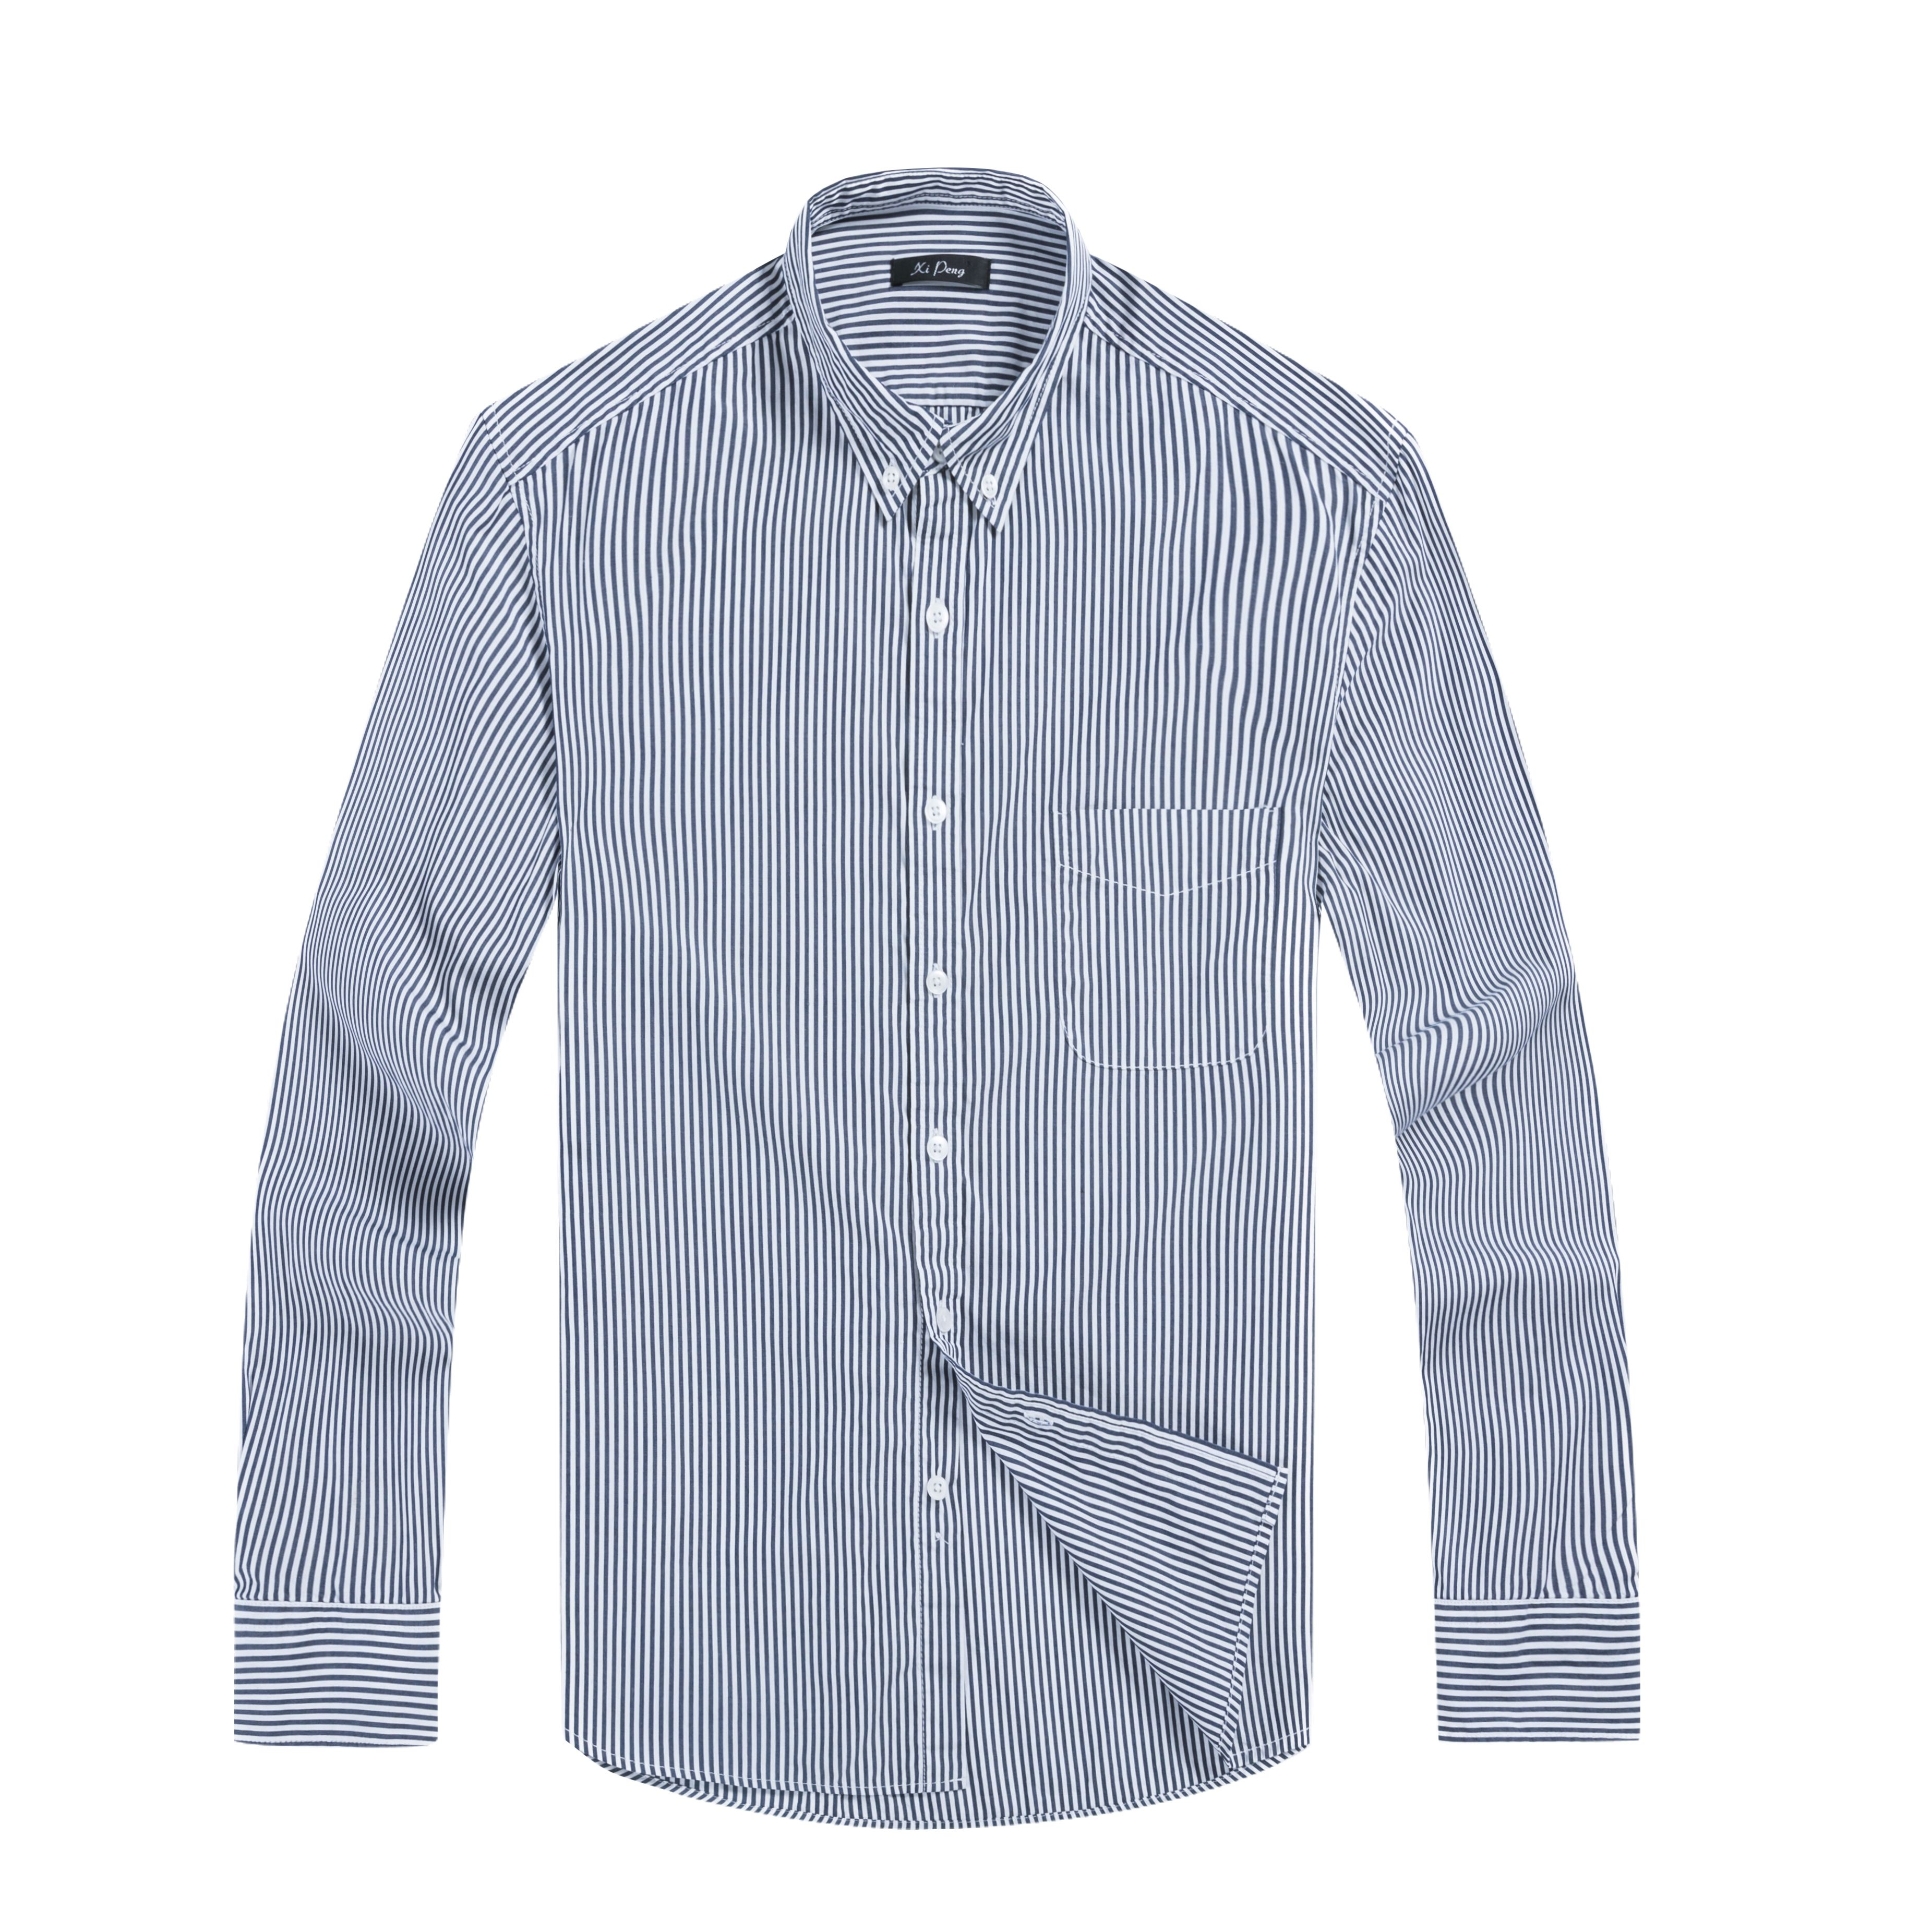 87d0aee092 This Shirt Featuring Slim Fit,Long Sleeve,Vertical Stripe Design,Button  Down Closure,Straight Turn Down Collar,Convertible Cuff,Front Chest Pocket  3.